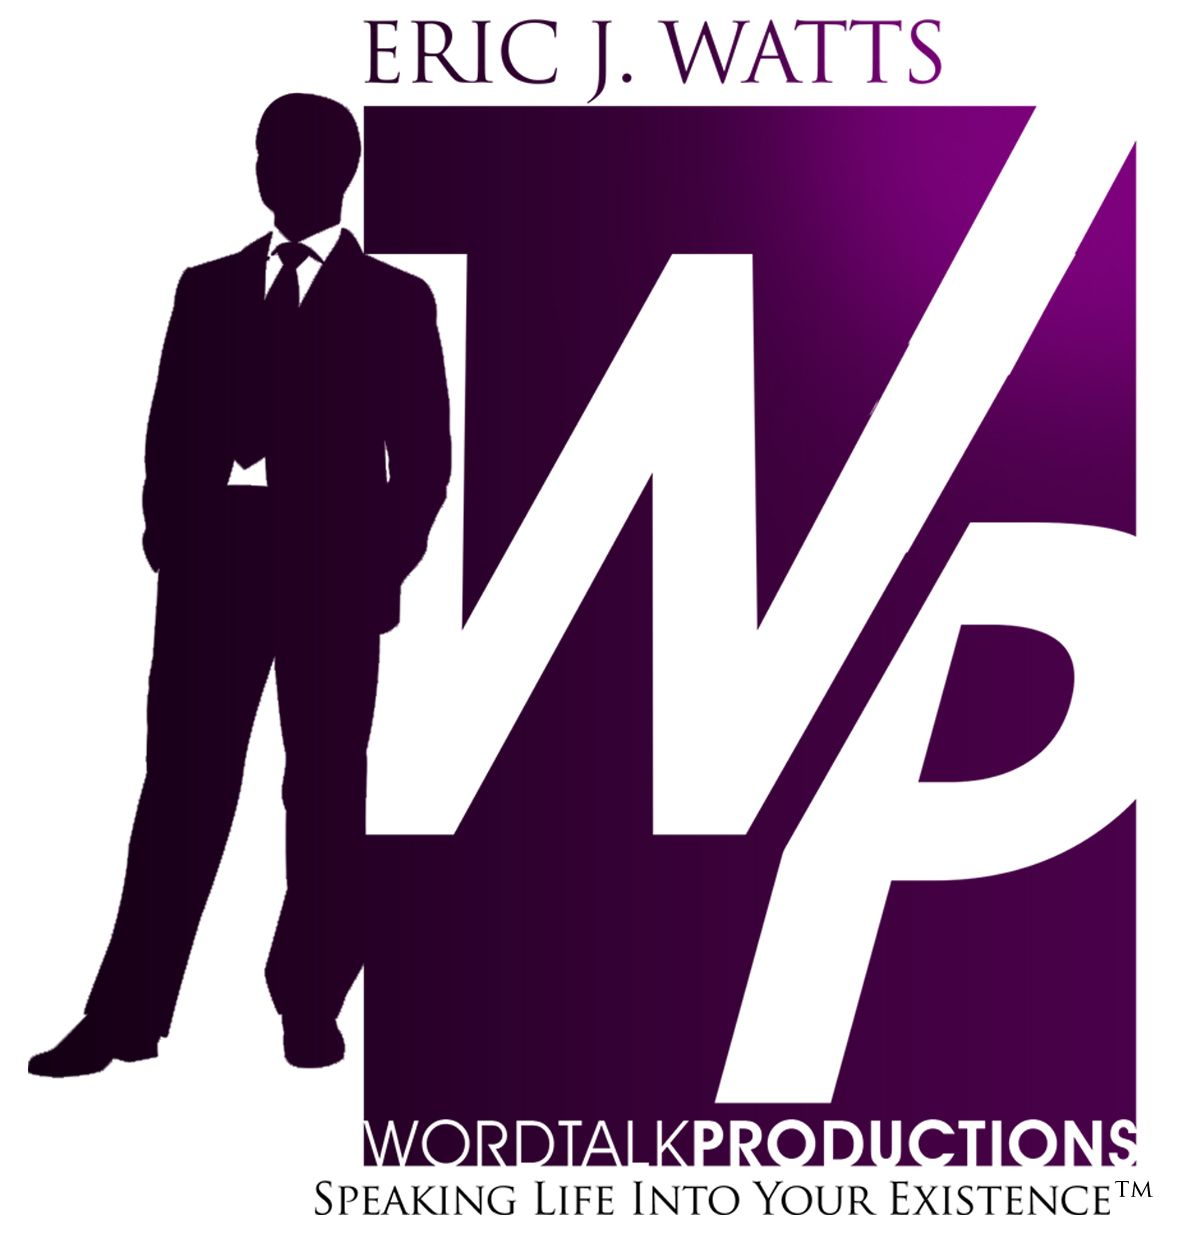 wordtalkproductions Logo